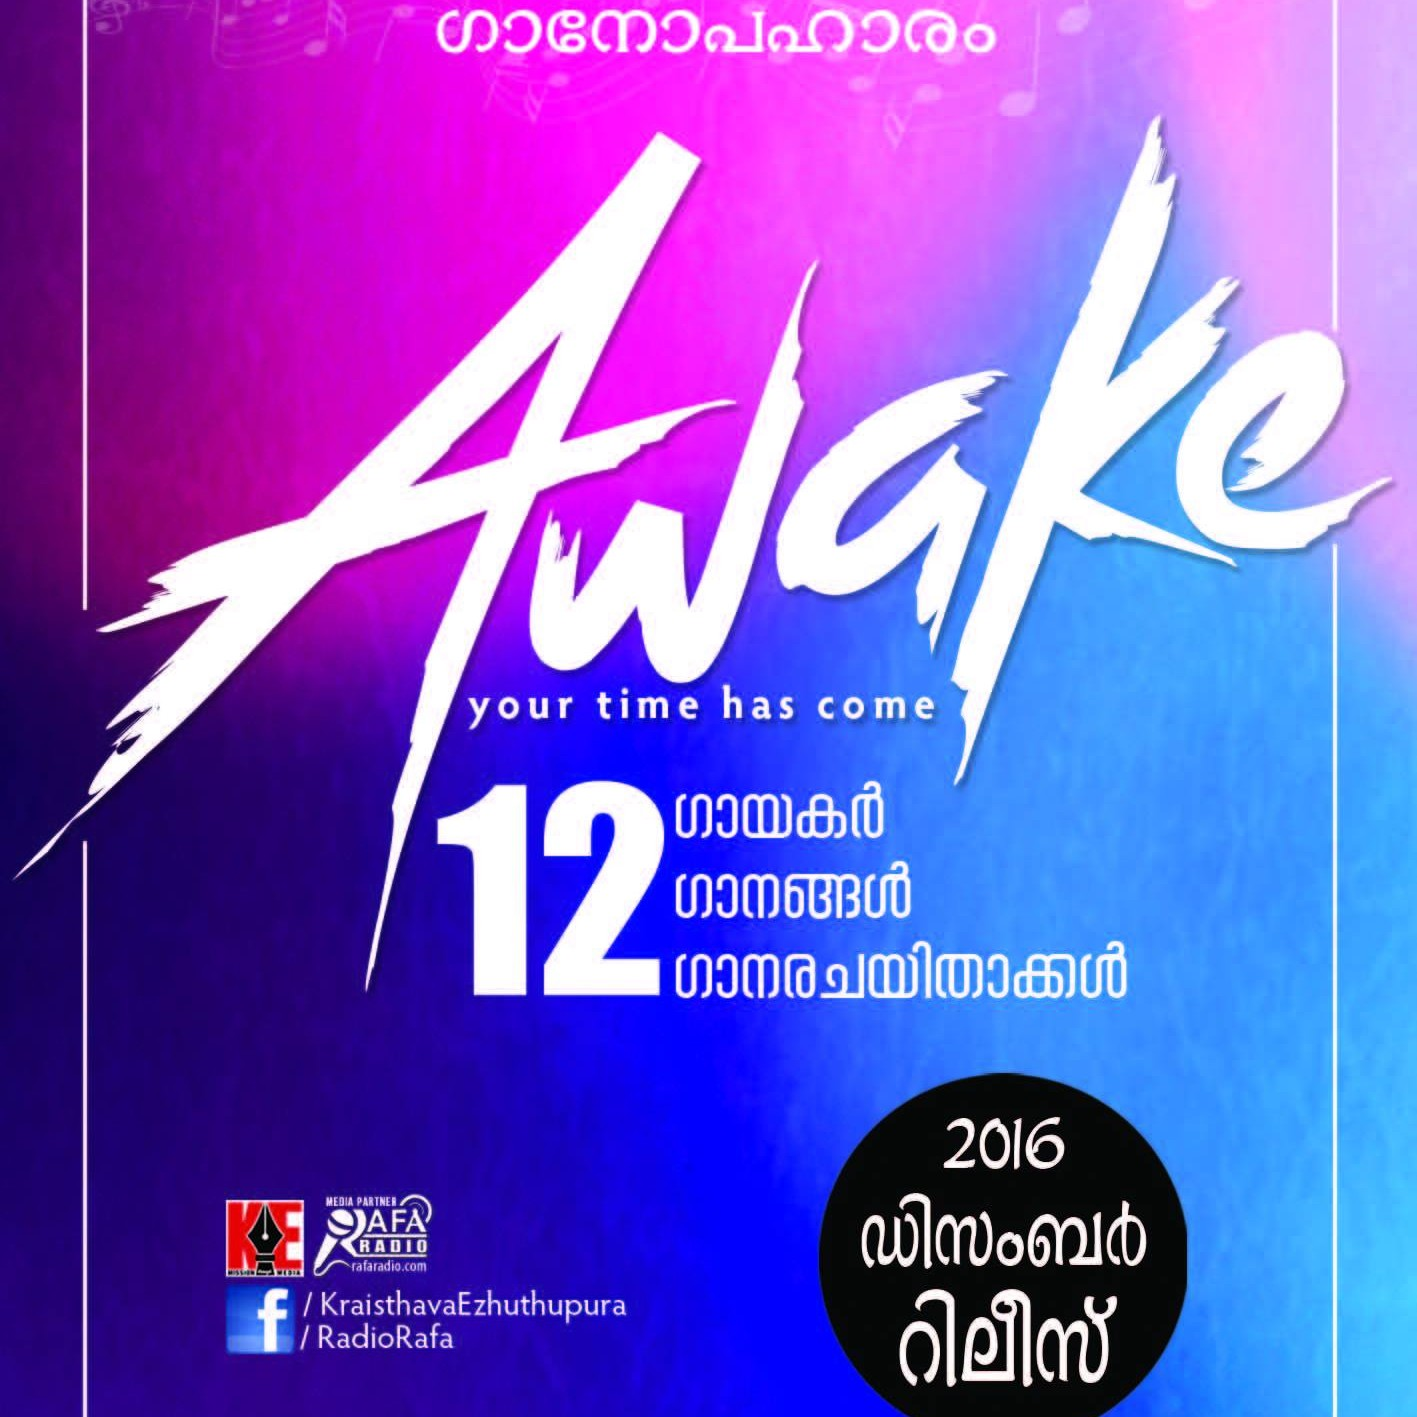 Libny-Kattapuram-Music-Composer-Songwriter-Awake-Albums